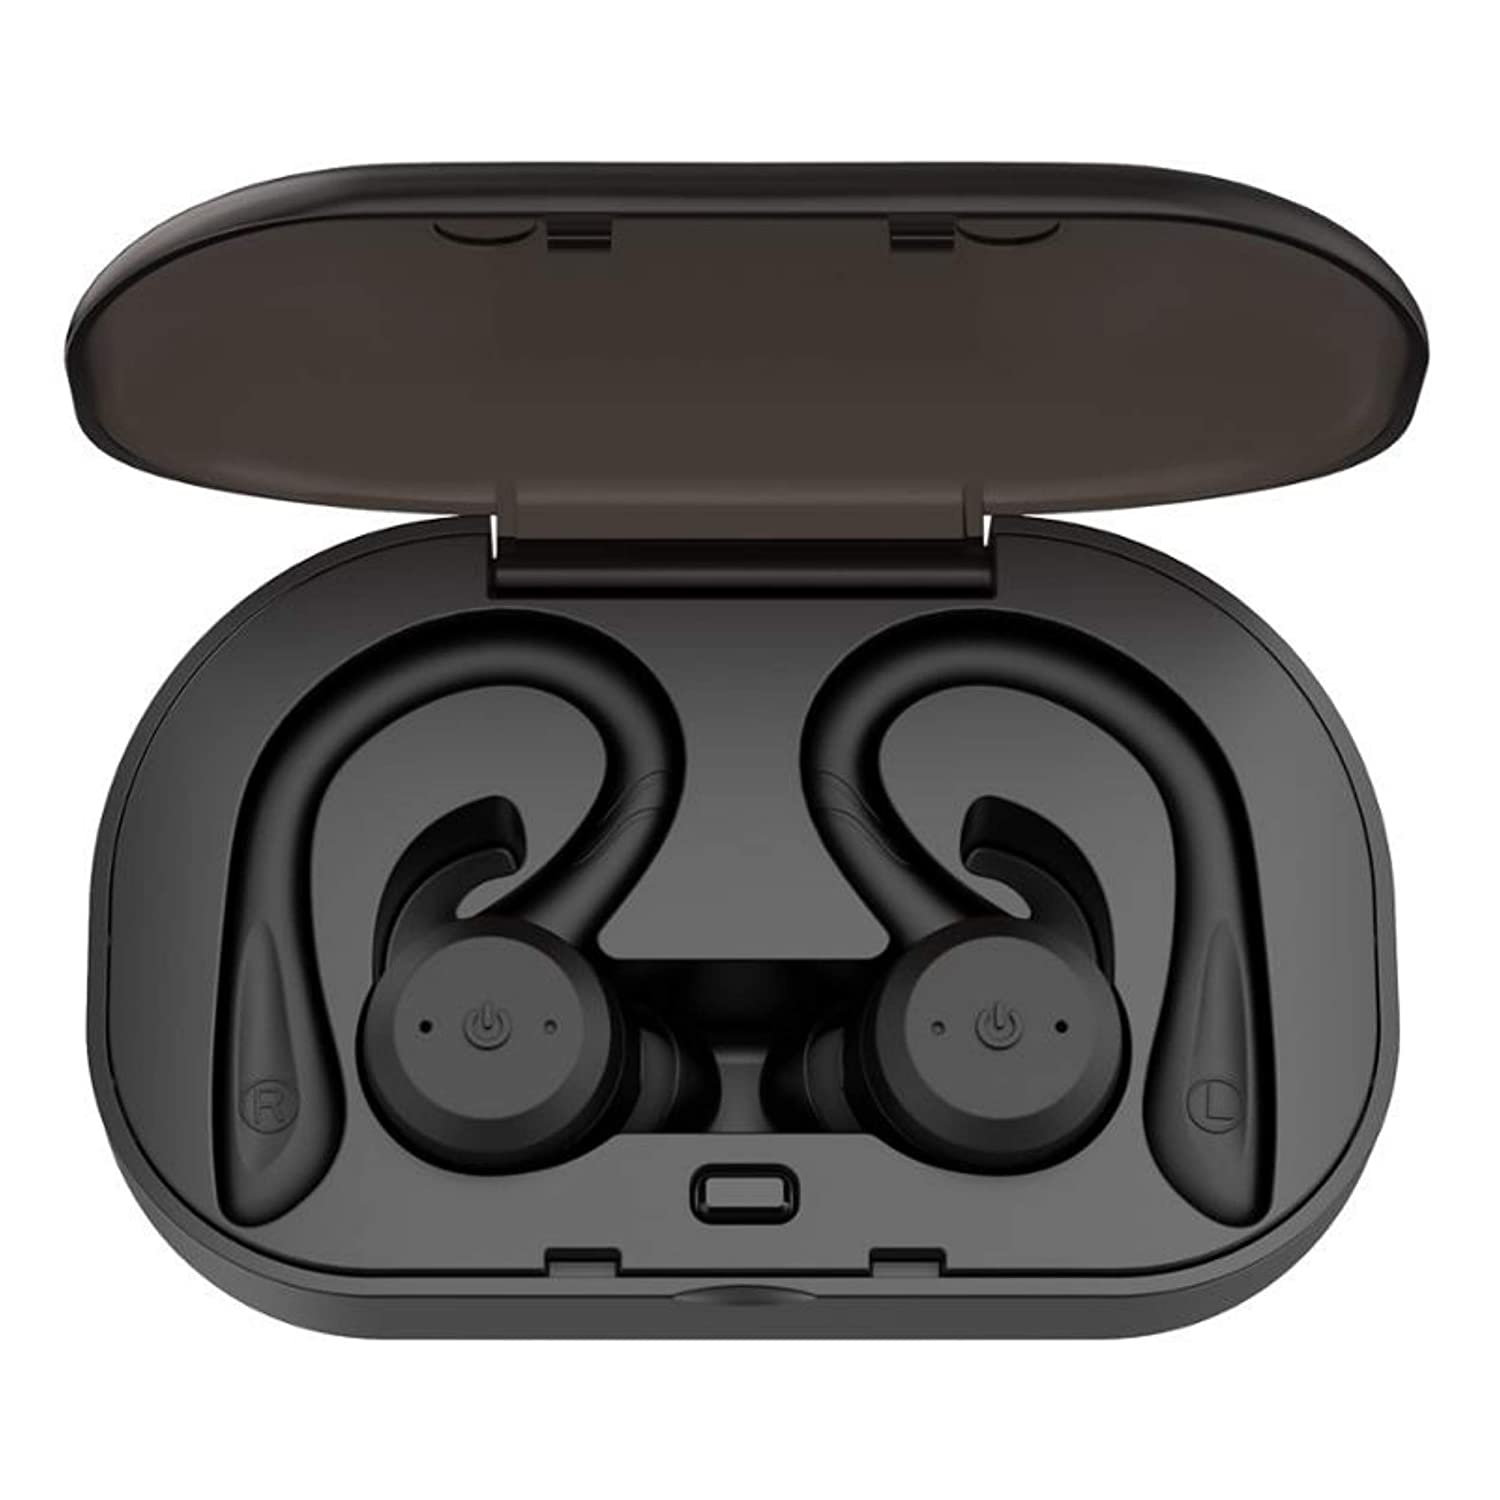 True Wireless Earbuds Bluetooth 5.0 Headphones, Sports in-Ear TWS Stereo Mini Headset w Mic Extra HIFI Bass IPX7 Waterproof,Instant Pairing 15H Battery Charging Case Noise Cancelling Earbuds Earphones